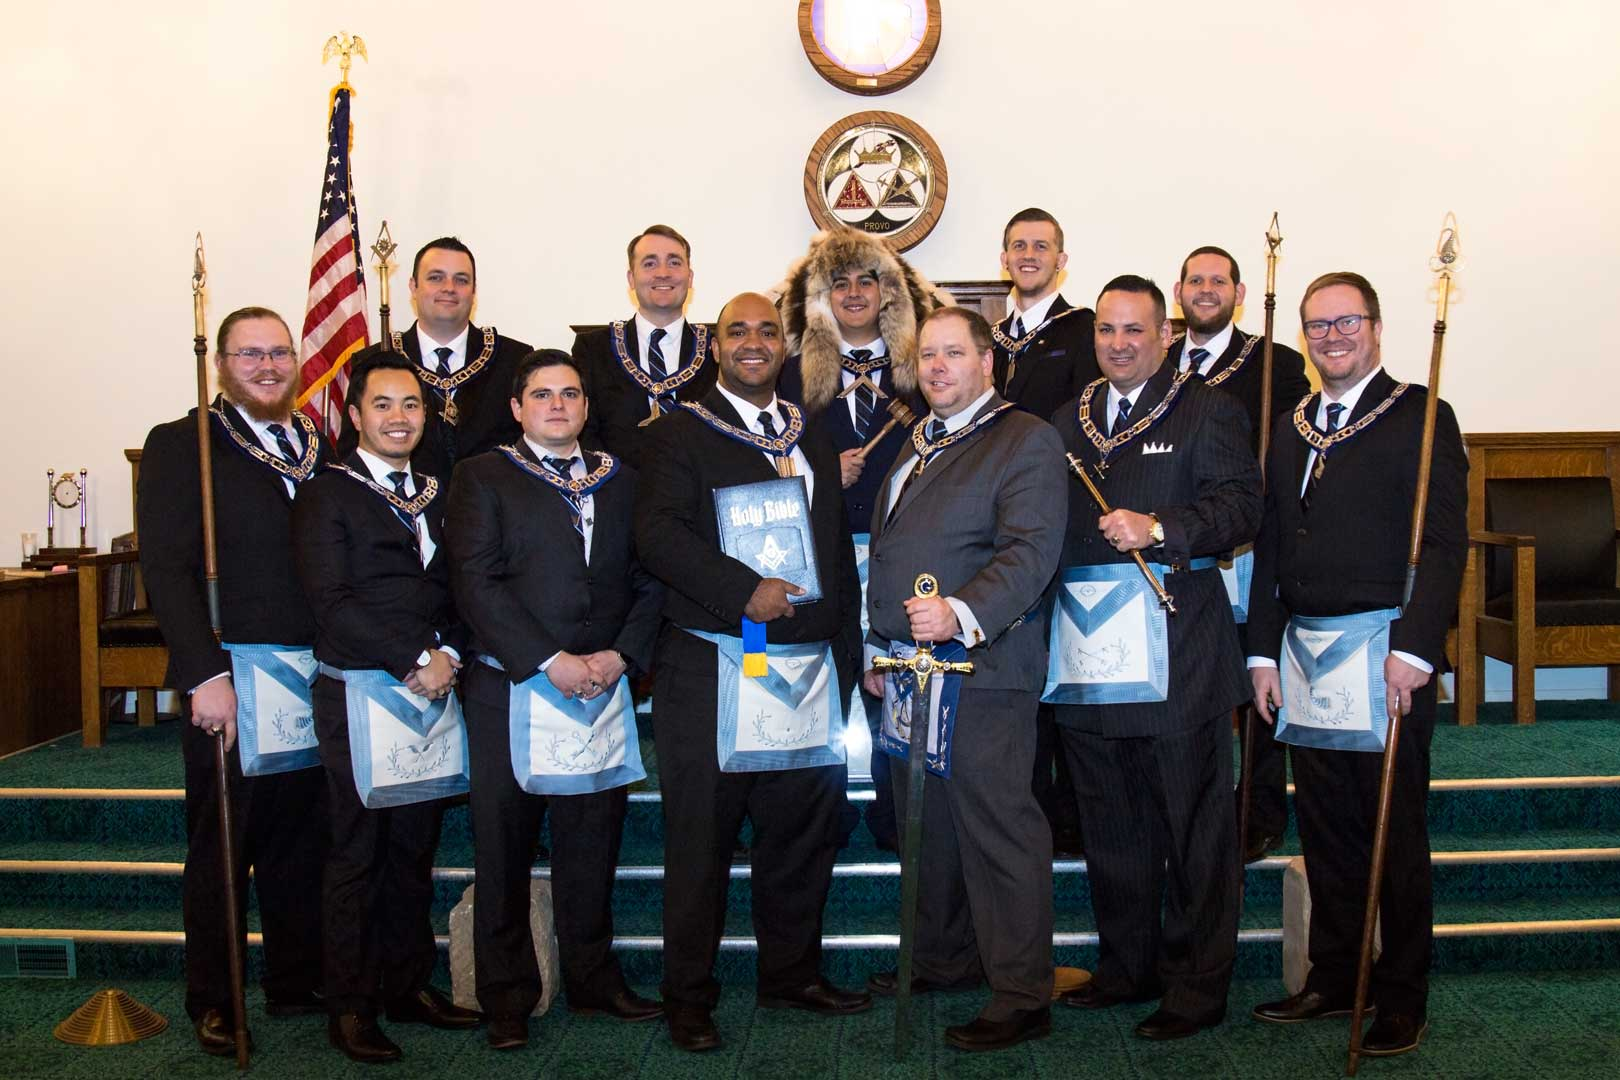 Provo Story Masonic Lodge Officers 2018